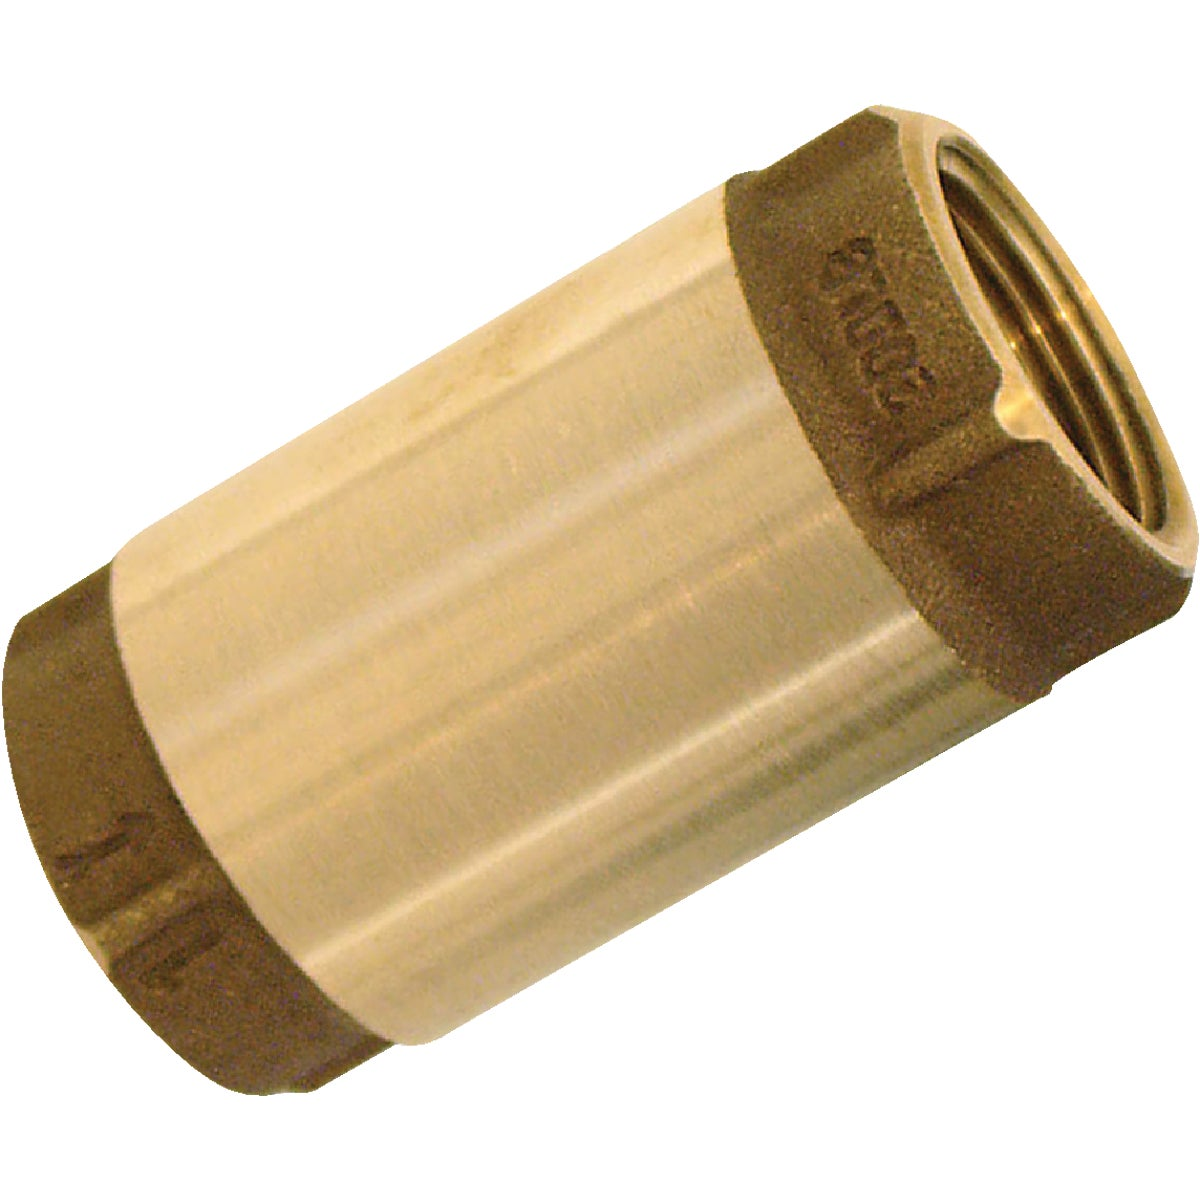 "2"" LF CHECK VALVE - 7506 by Simmons Mfg Co"